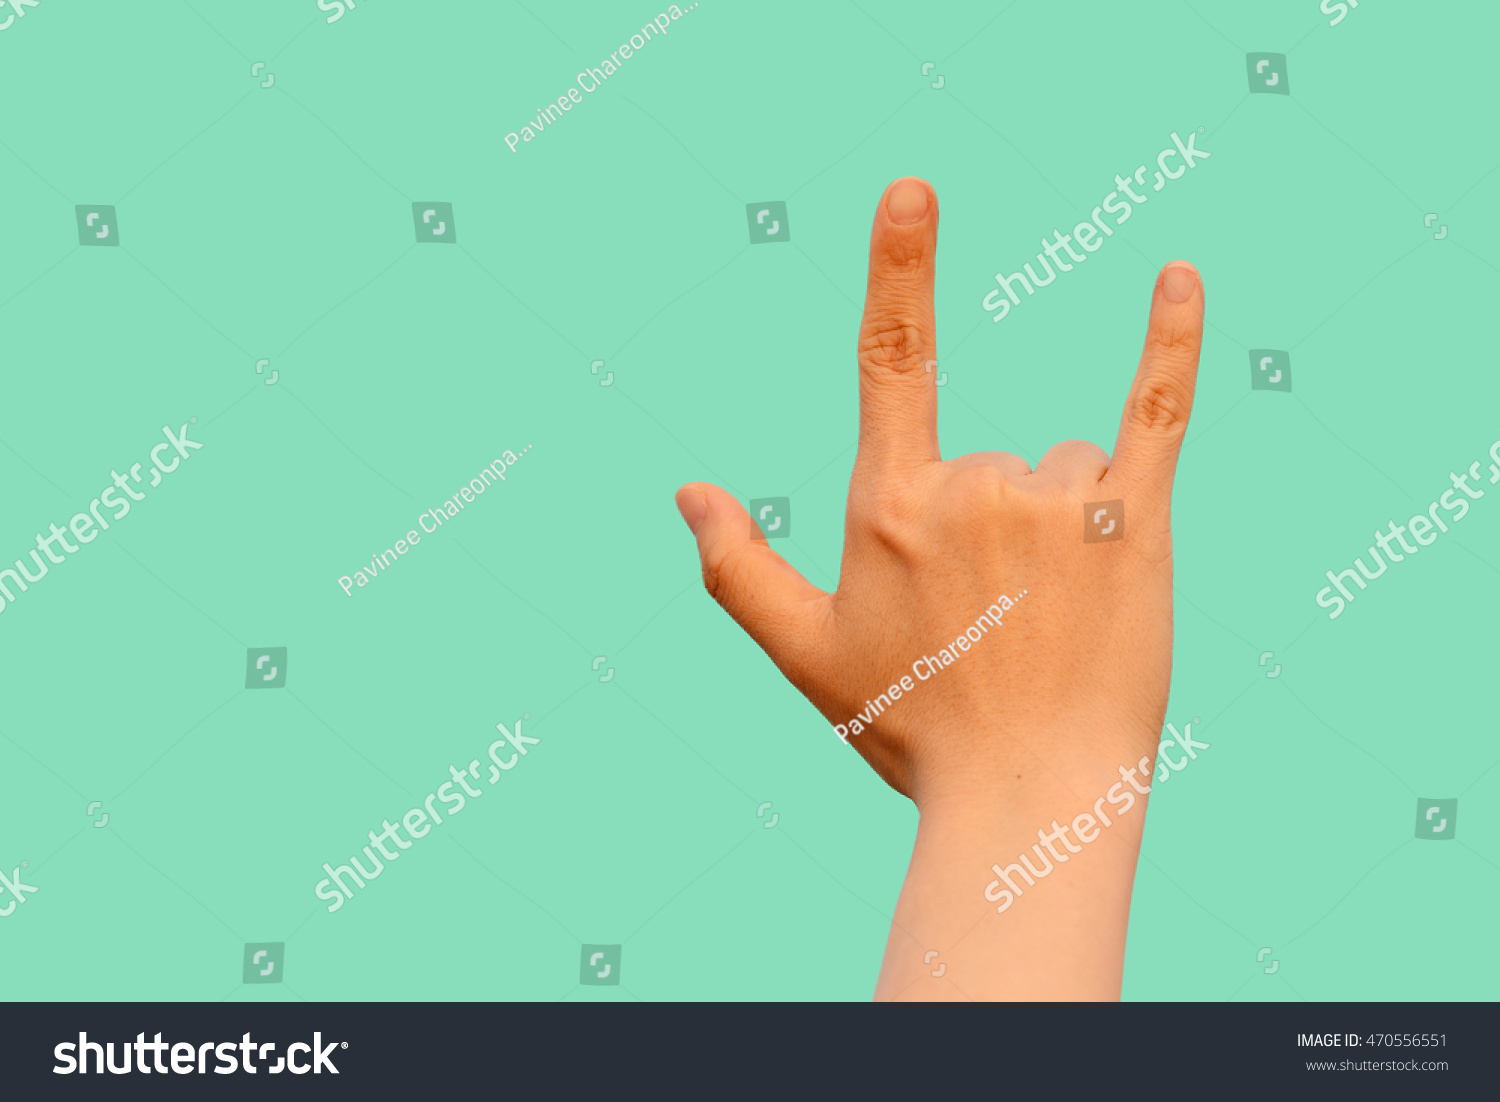 Love you hand sign language on stock photo 470556551 shutterstock i love you in hand sign language on pastel color background concept about love and biocorpaavc